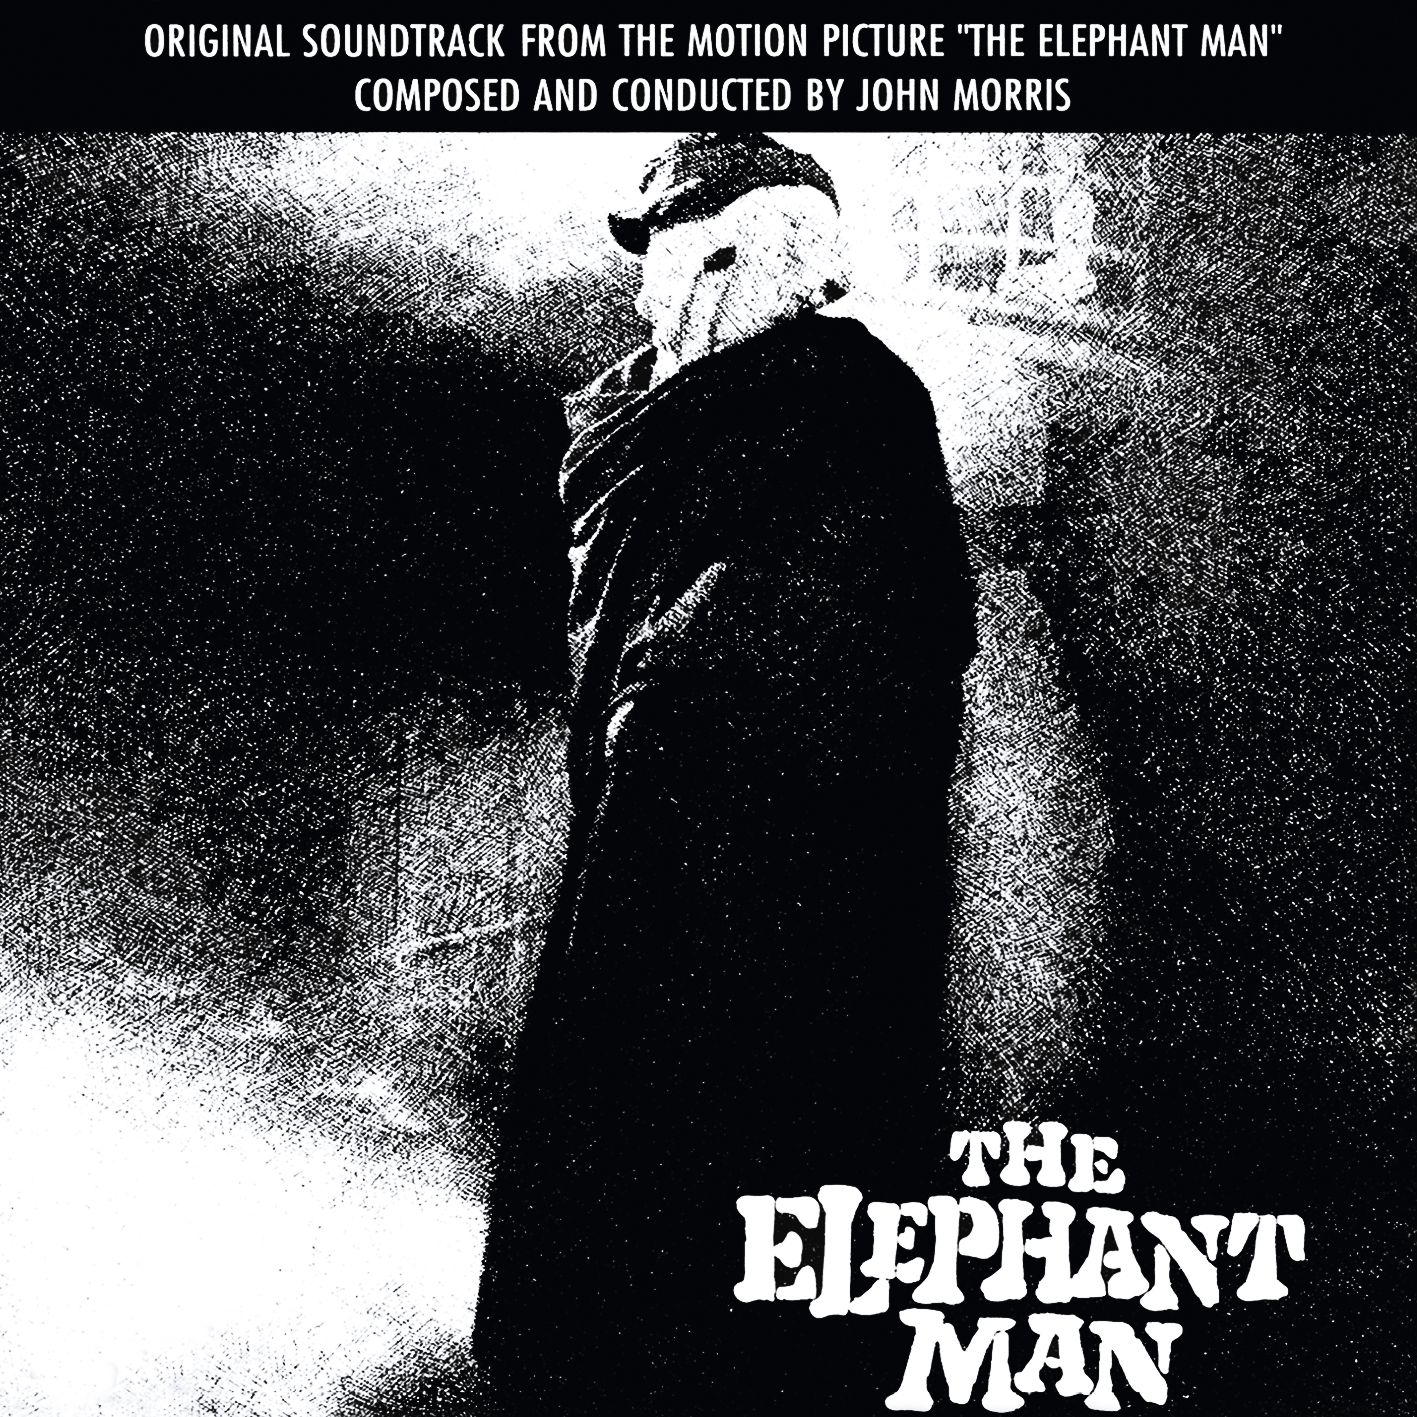 john merricks quest in the elephant man by christine sparks The elephant man: a novel - ebook ebook written by christine sparks john merrick had lived for more than twenty years imprisoned in a body that condemned him.